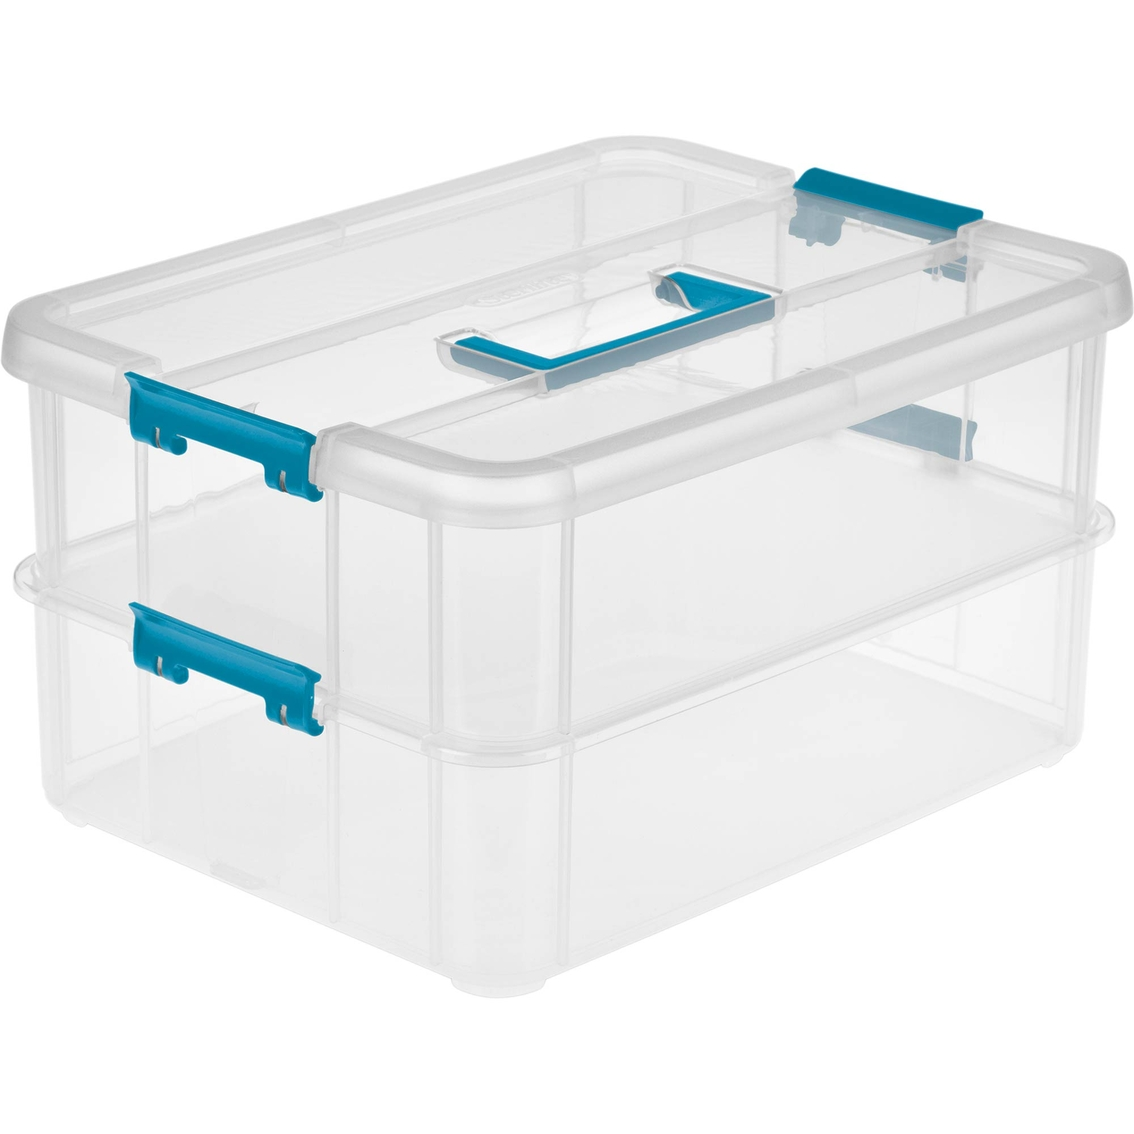 Sterilite Stack And Carry 2 Layer Handle Box | Plastic Bins ...